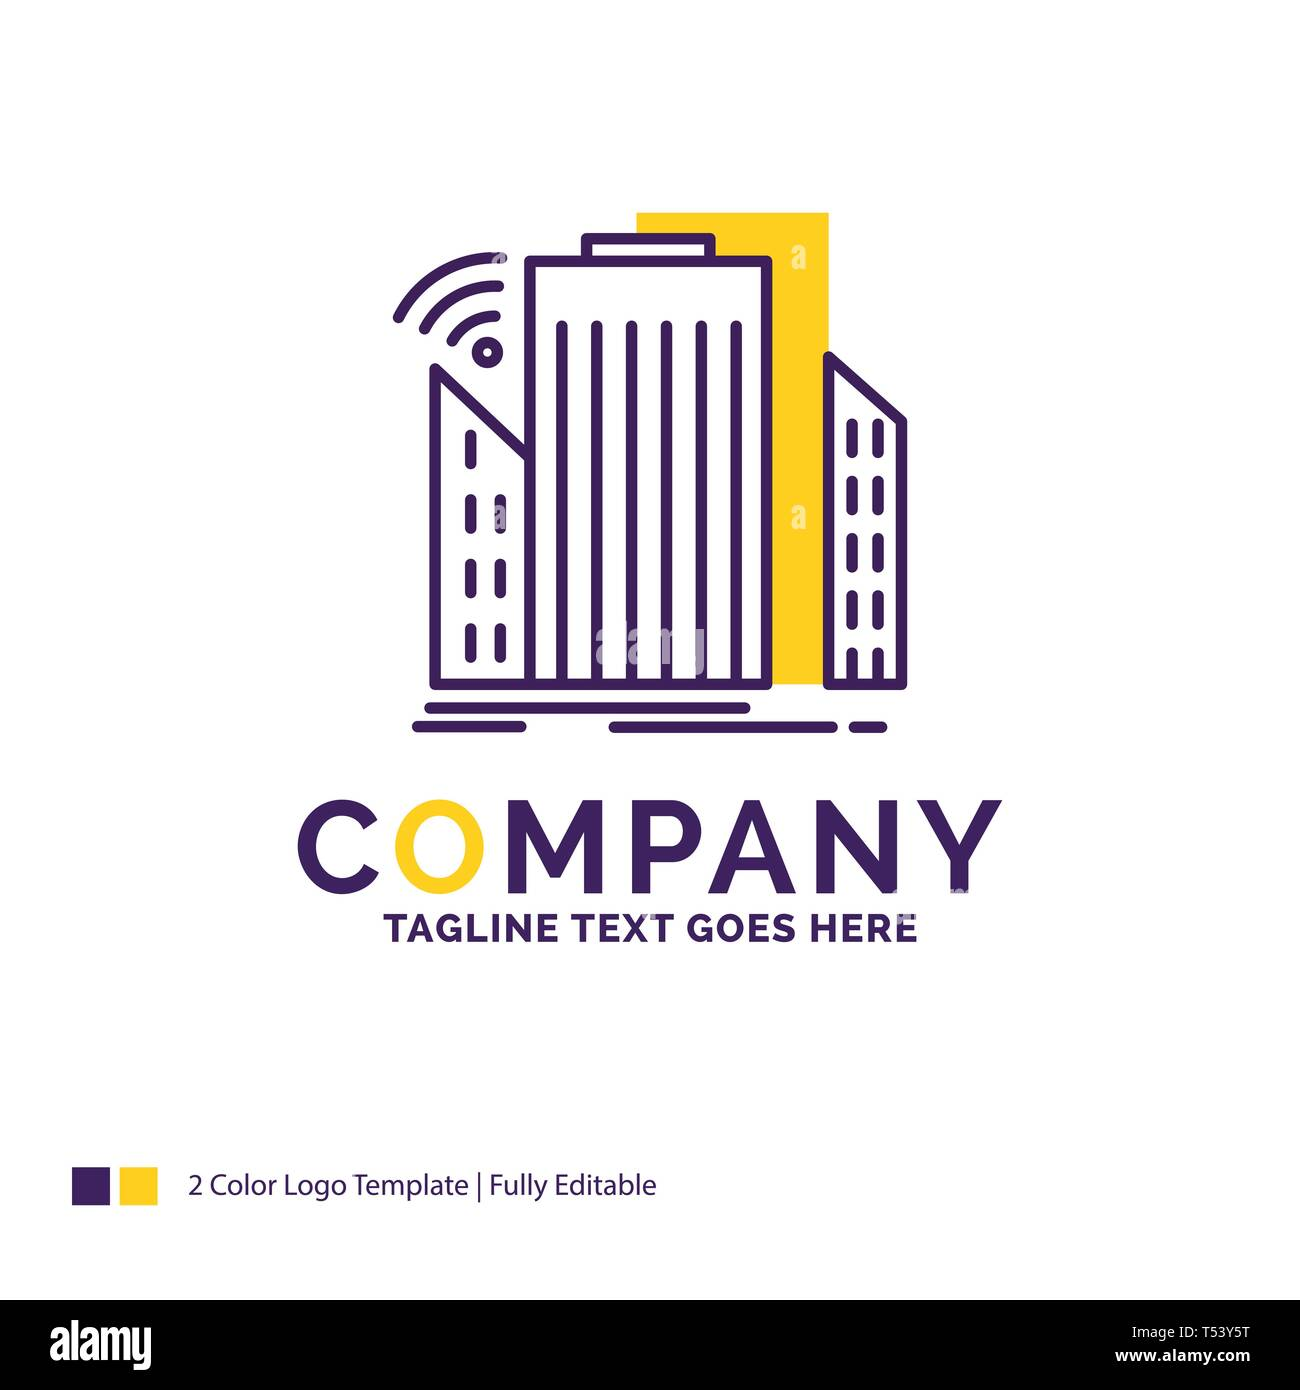 Company Name Logo Design For Buildings, city, sensor, smart, urban. Purple and yellow Brand Name Design with place for Tagline. Creative Logo template - Stock Image